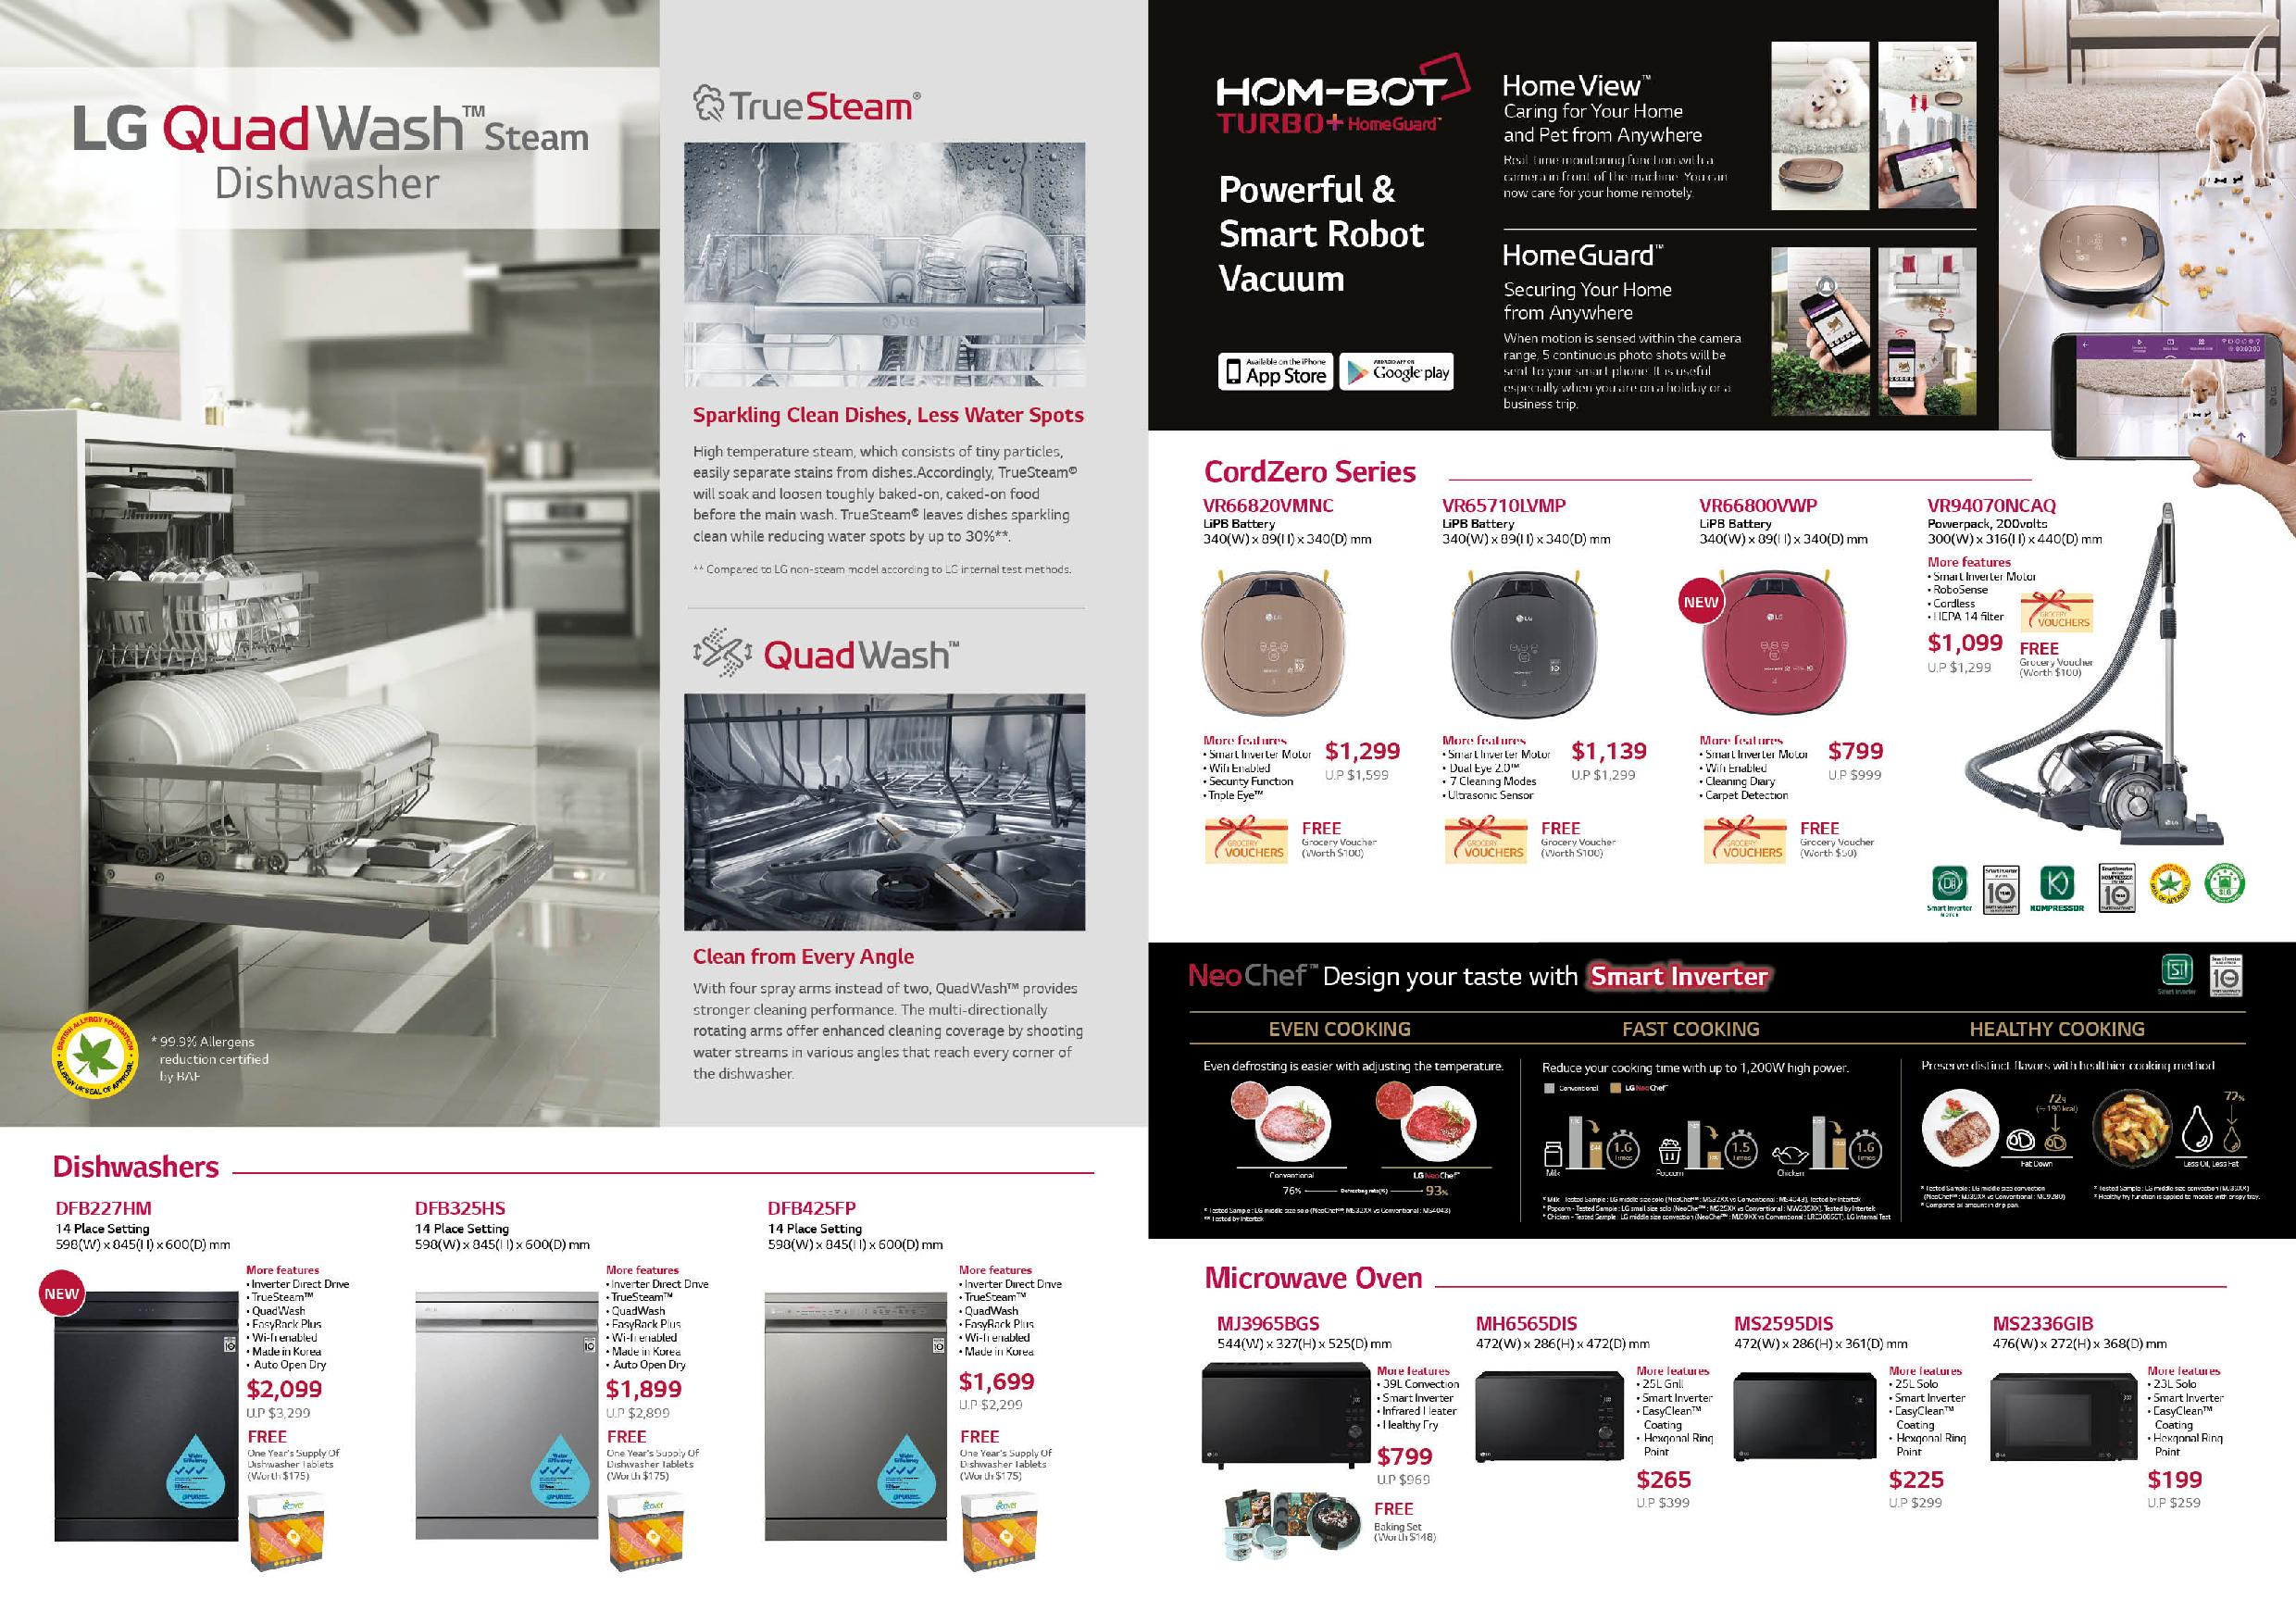 LG Home Appliances Archives - GengHui's Technology and